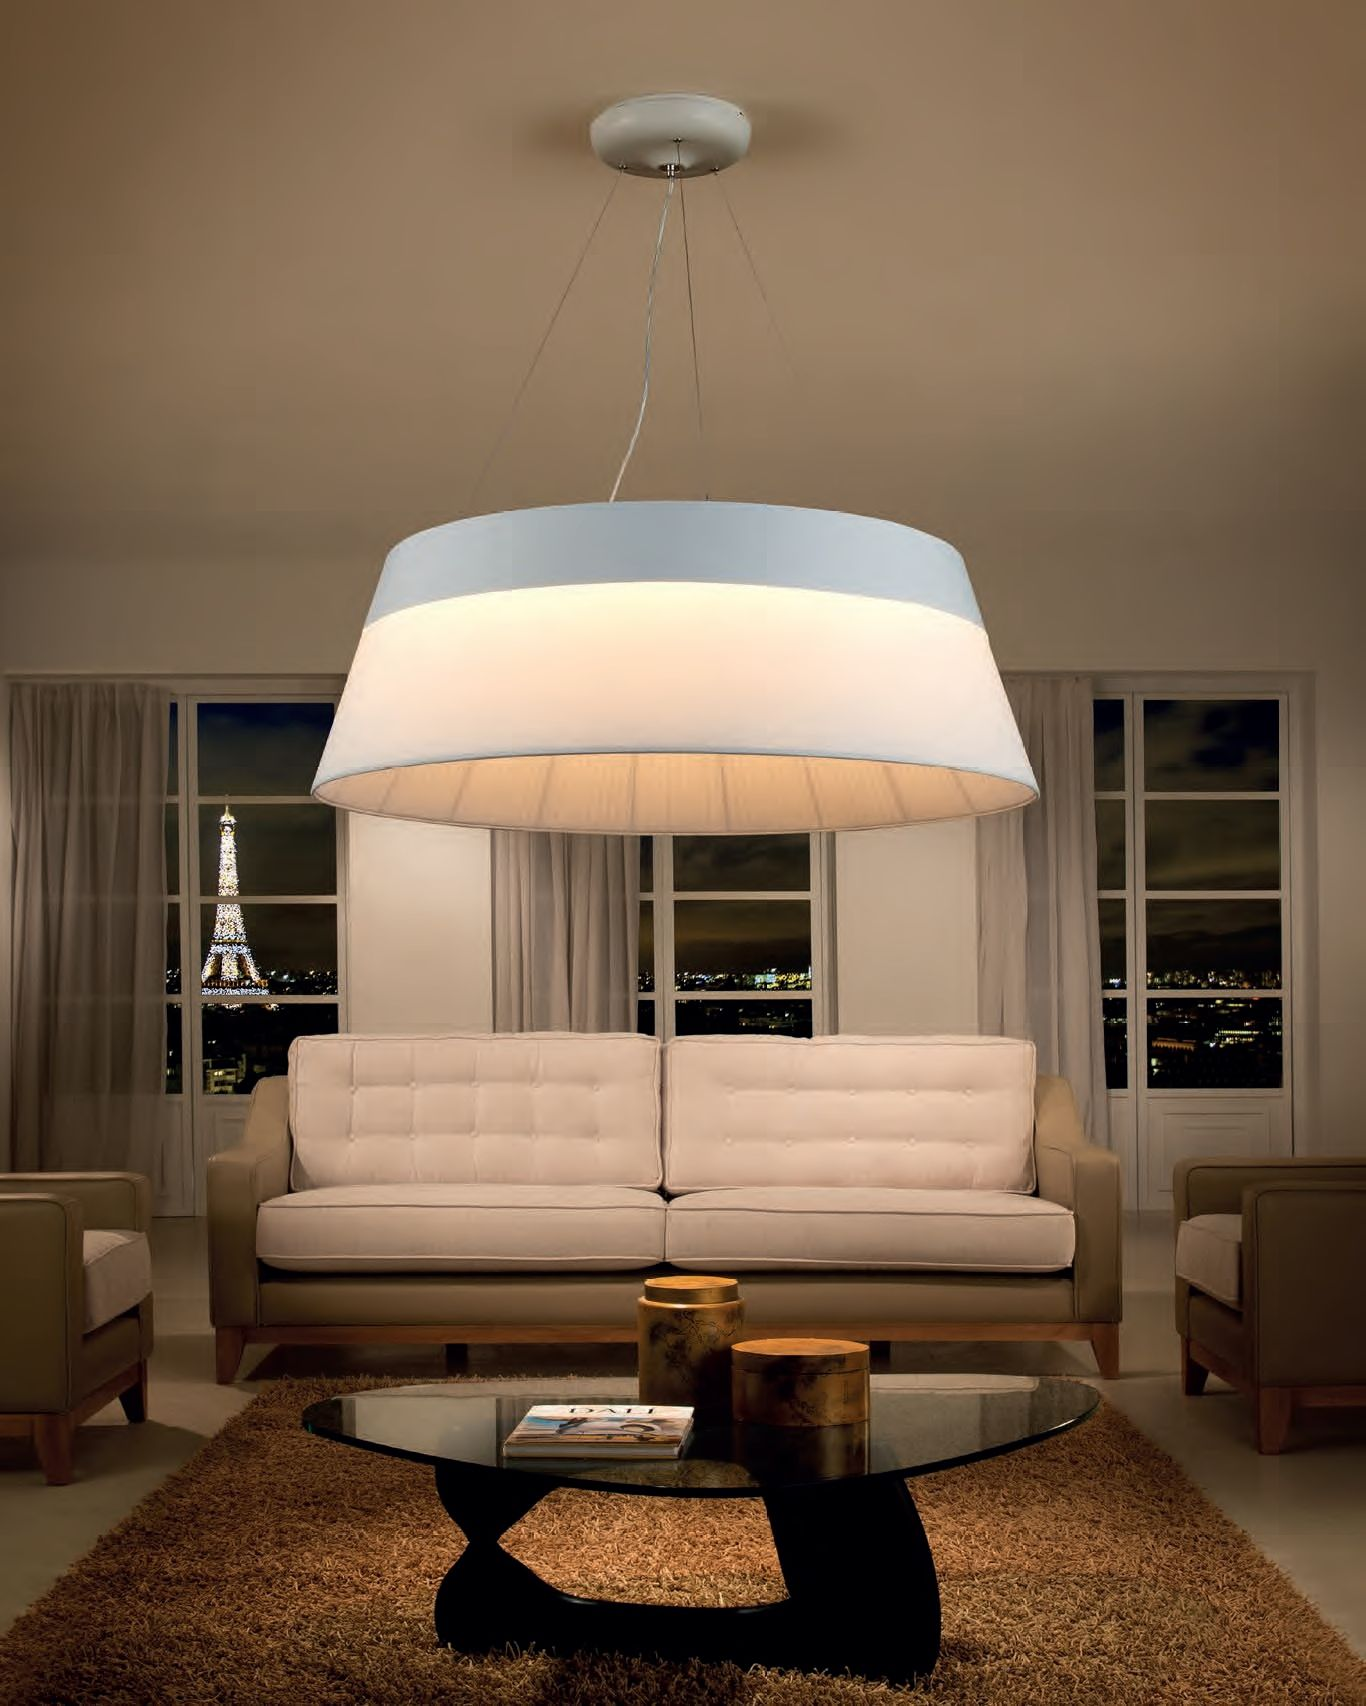 Extra Large Modern Feature Light For Atrium Entrance Hallway Or Lounge